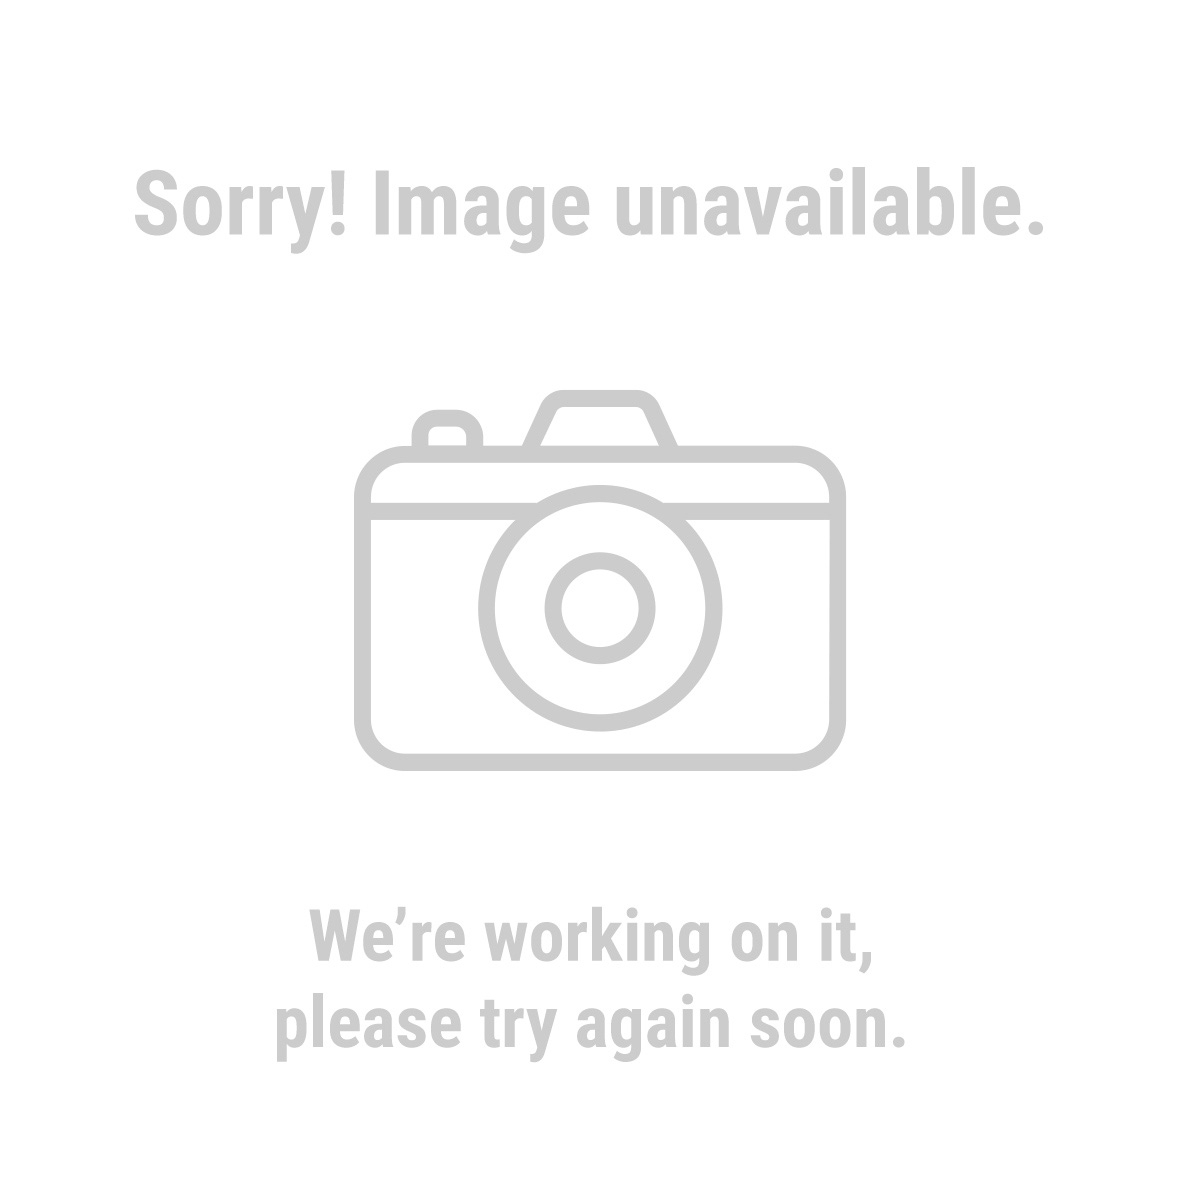 Pittsburgh 3577 28 Piece Transfer Punch Set